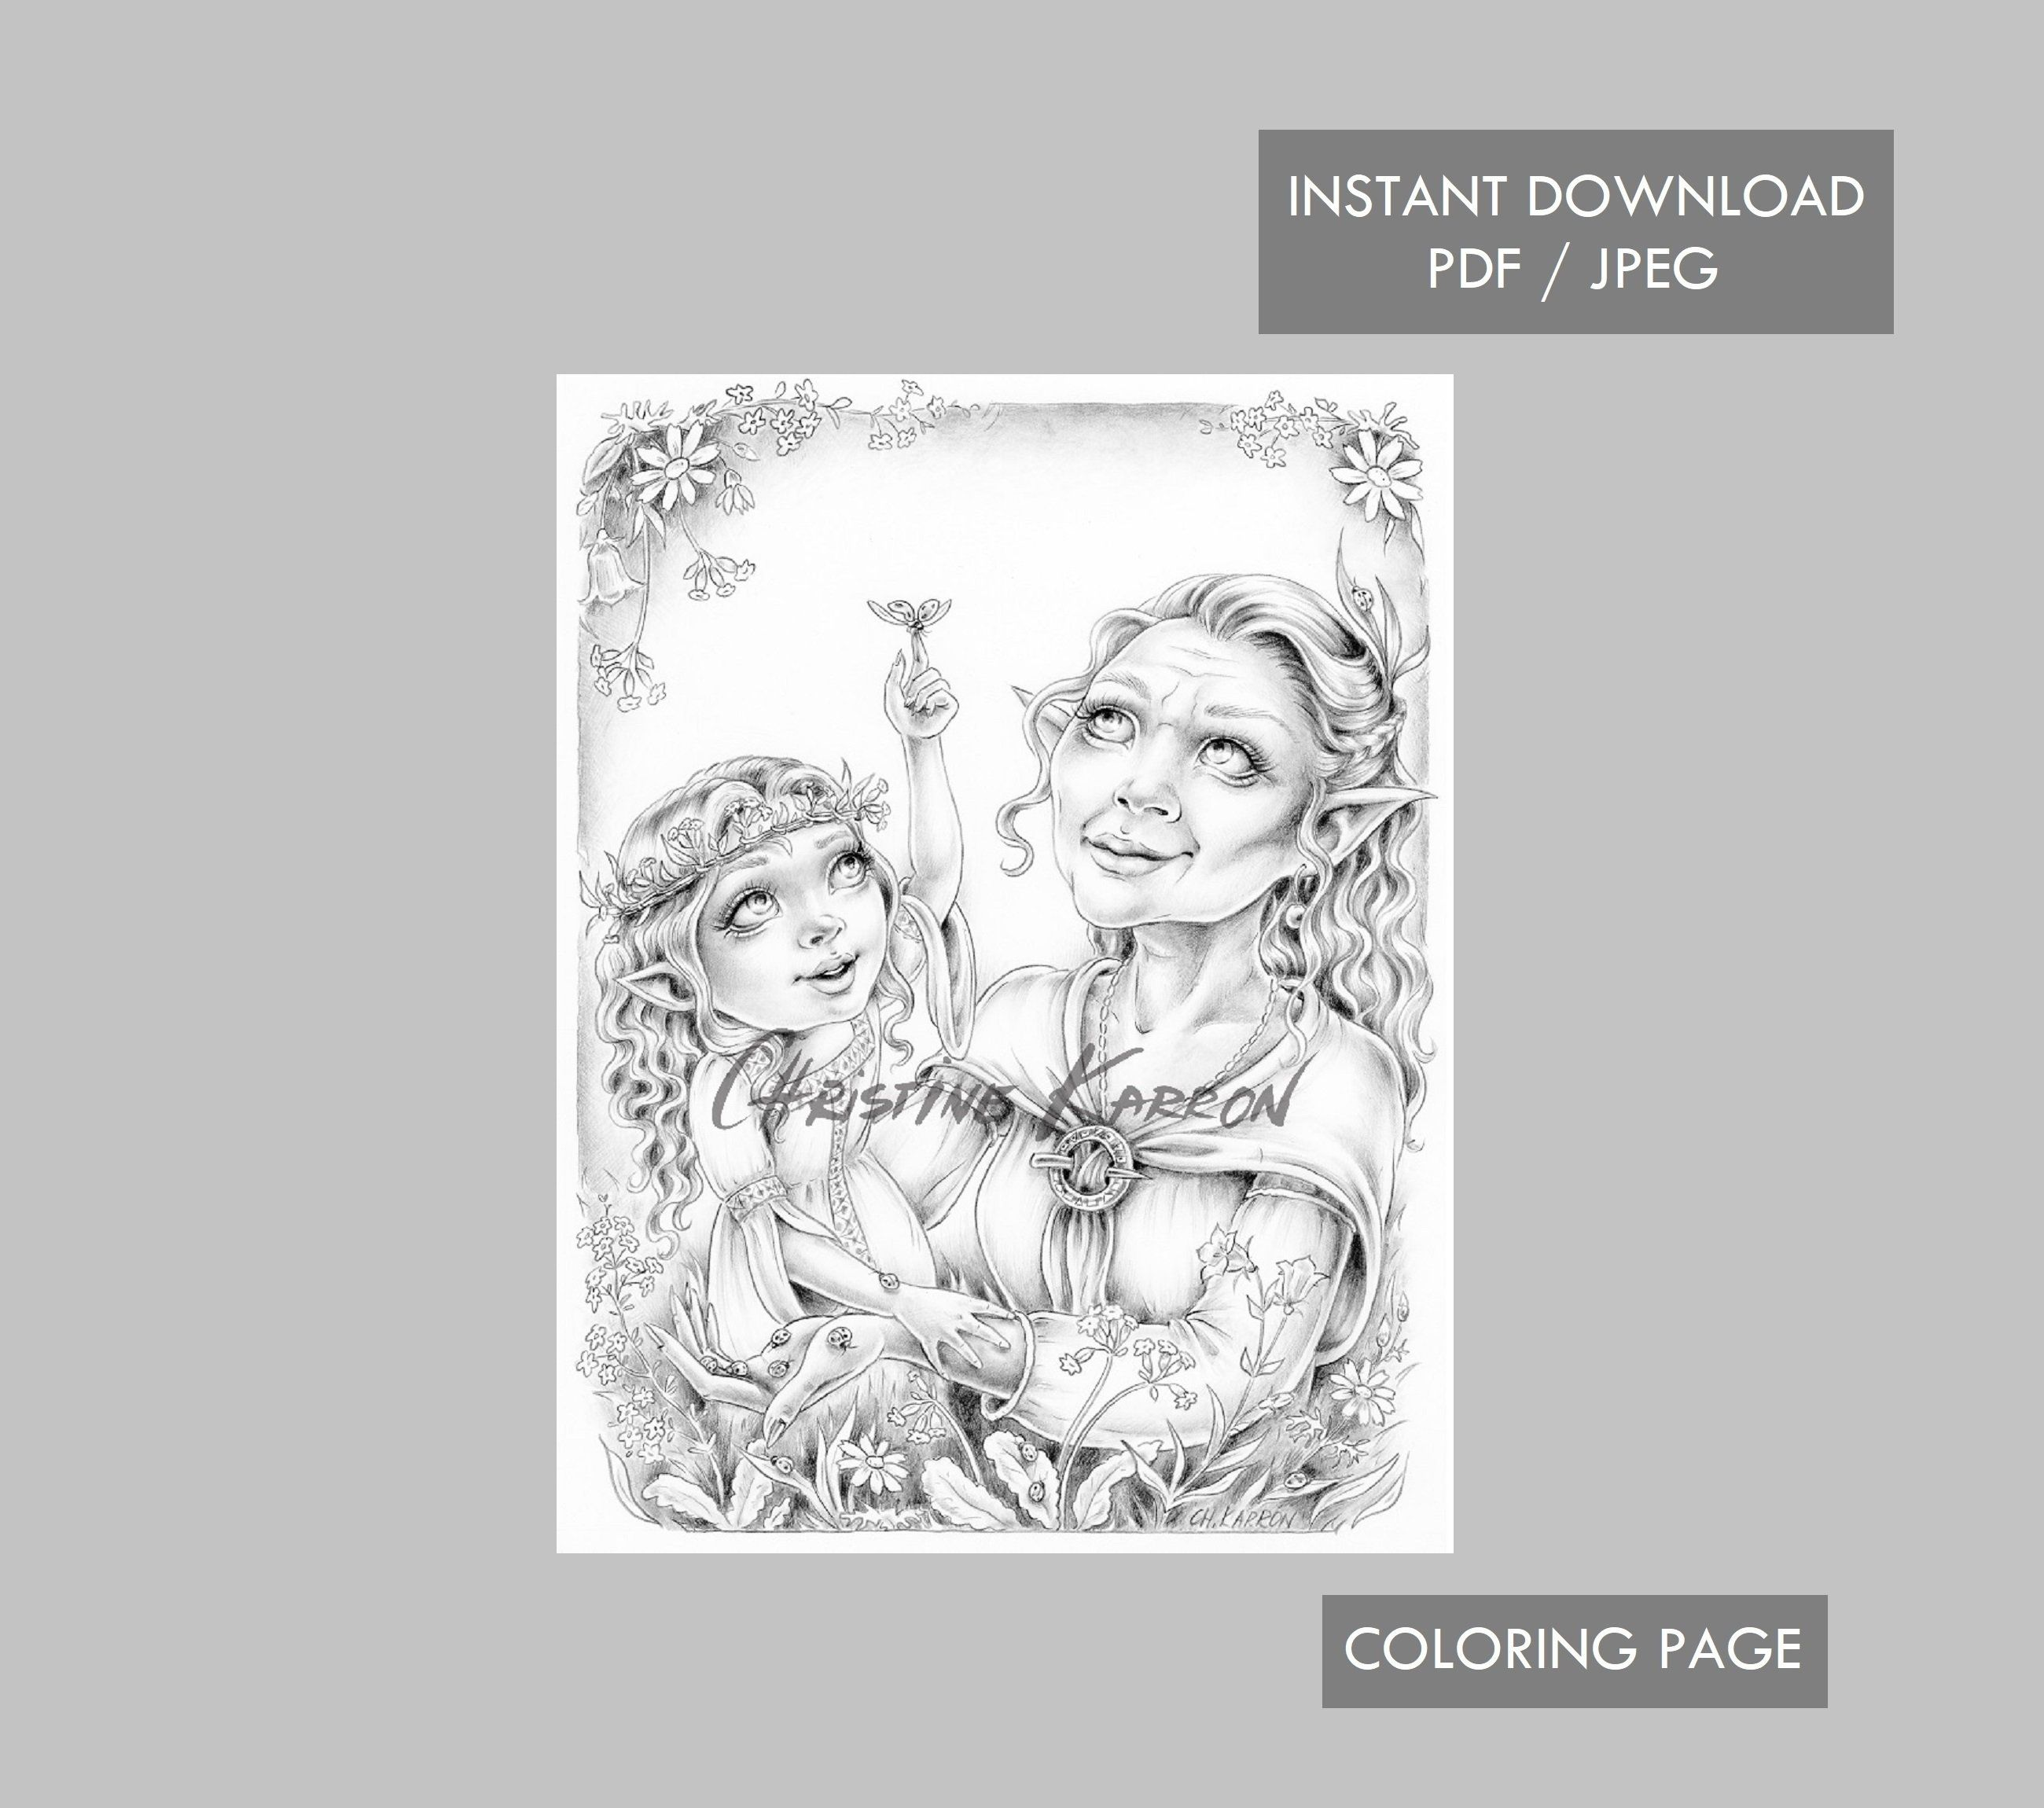 Fairy Grandmother With Granddaughter Coloring Page Grayscale Instant Download Printable File Jpeg And Pdf Coloring Pages Forest Coloring Pages Grayscale [ 2300 x 2600 Pixel ]